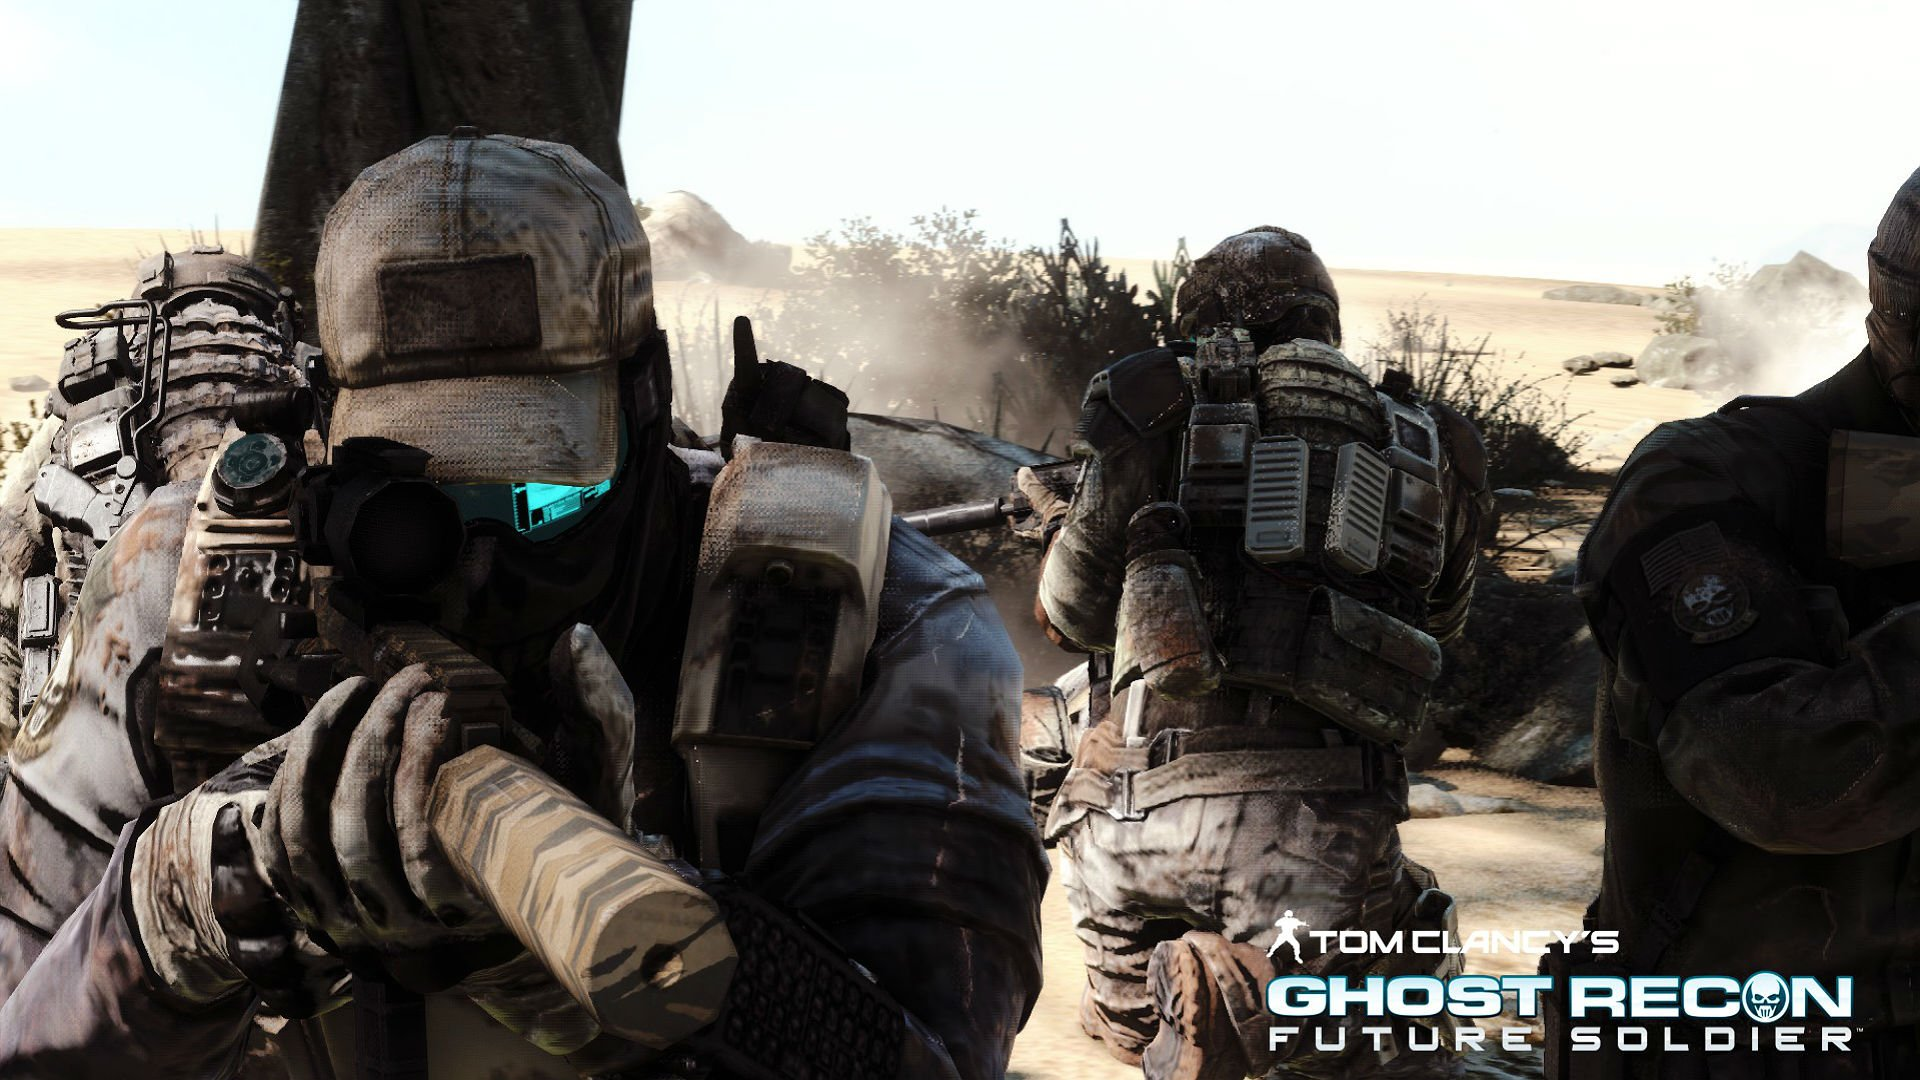 Ghost Recon Wallpaper 1920x1080